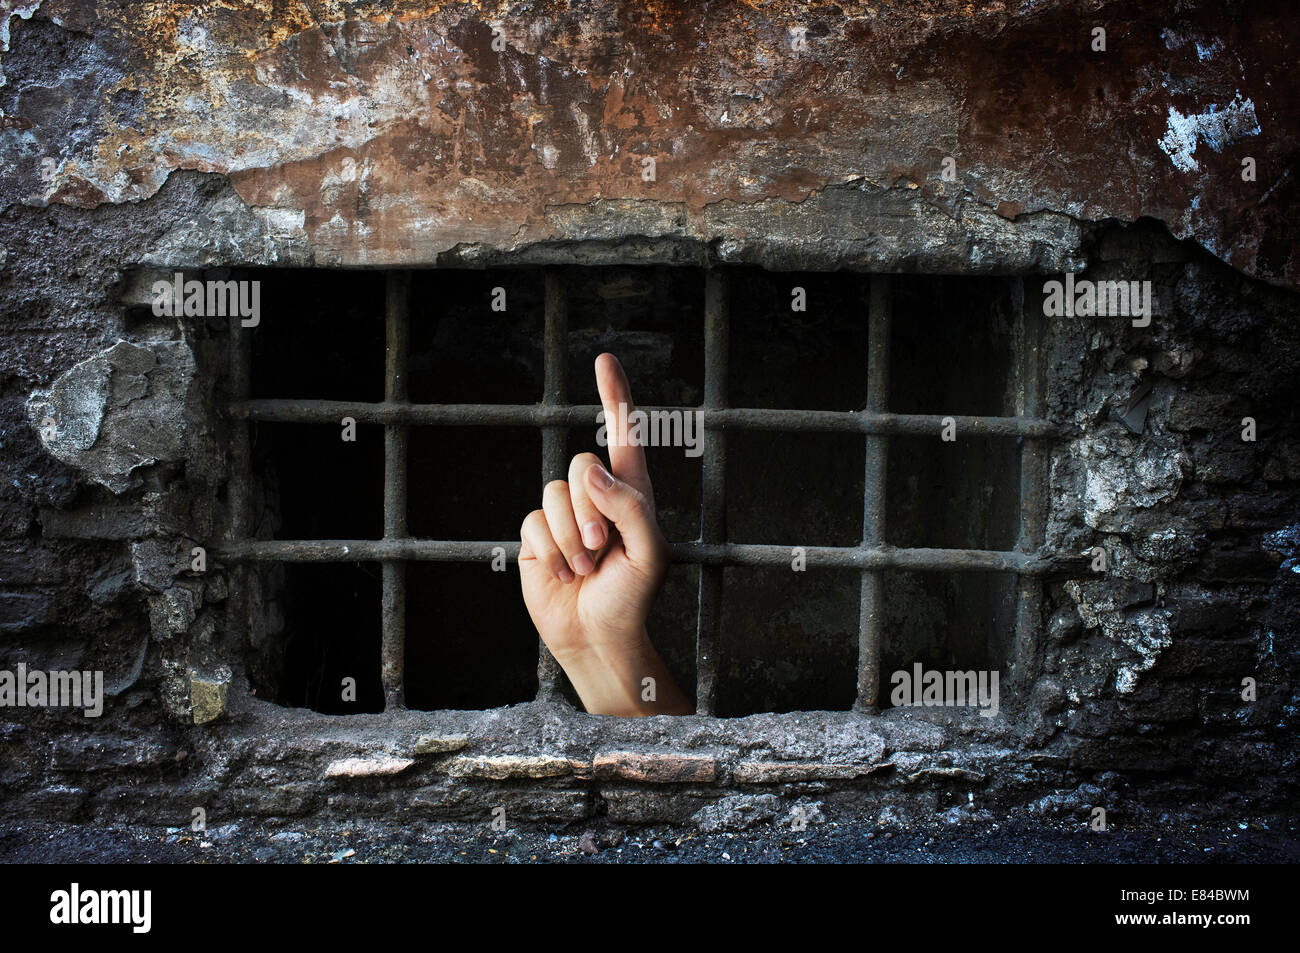 Conceptual image of a hand reaching out from a dungeon. - Stock Image